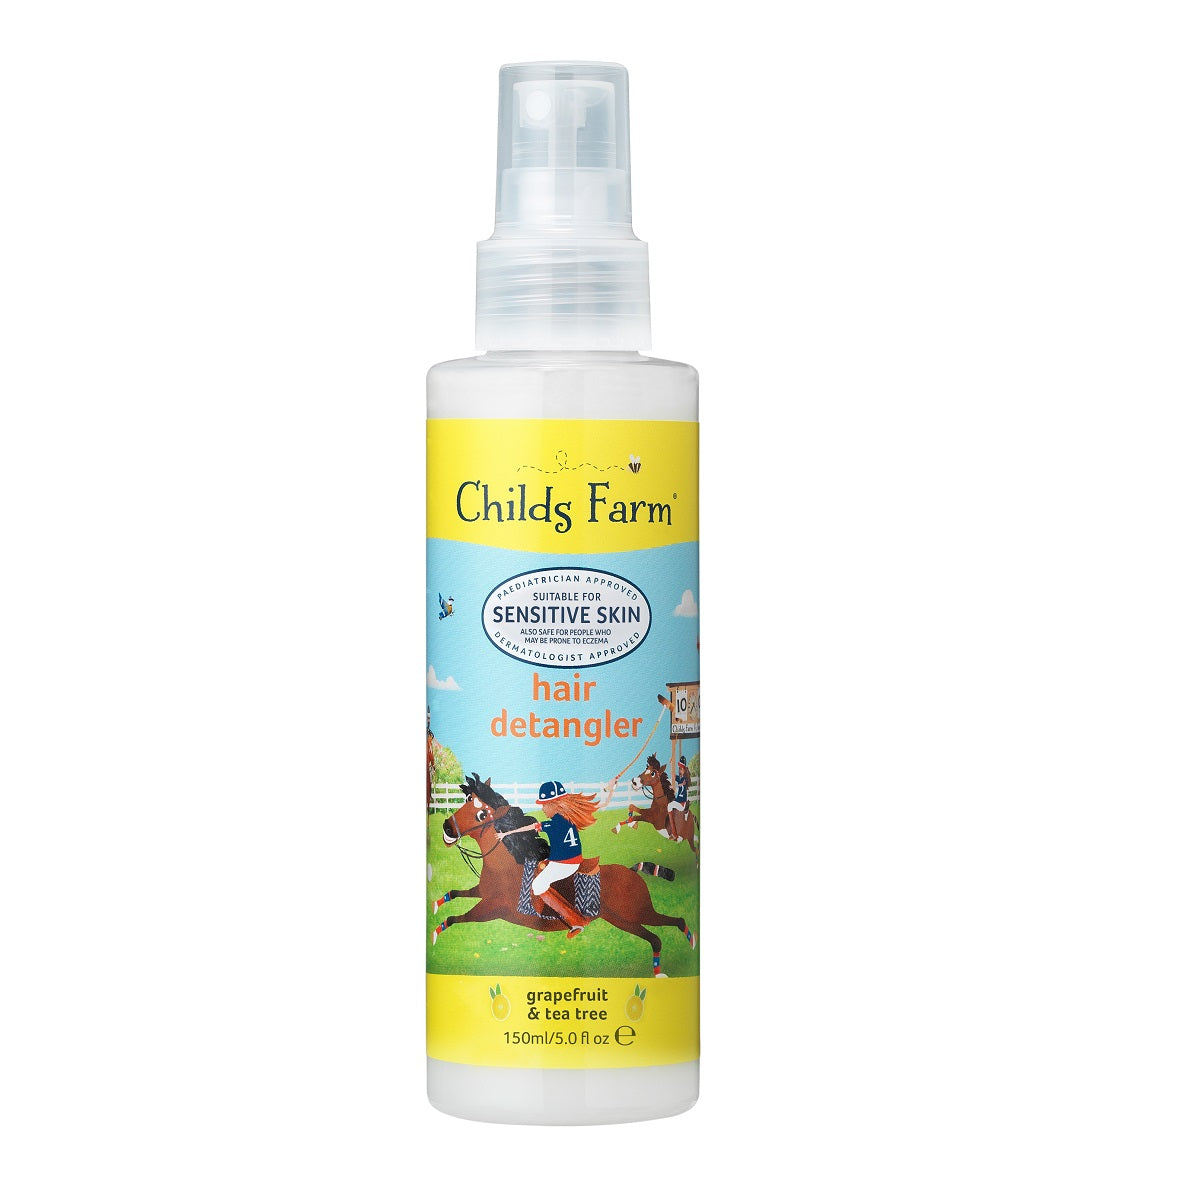 Childs Farm Hair Detangler Grapefruit & Tea Tree Oil